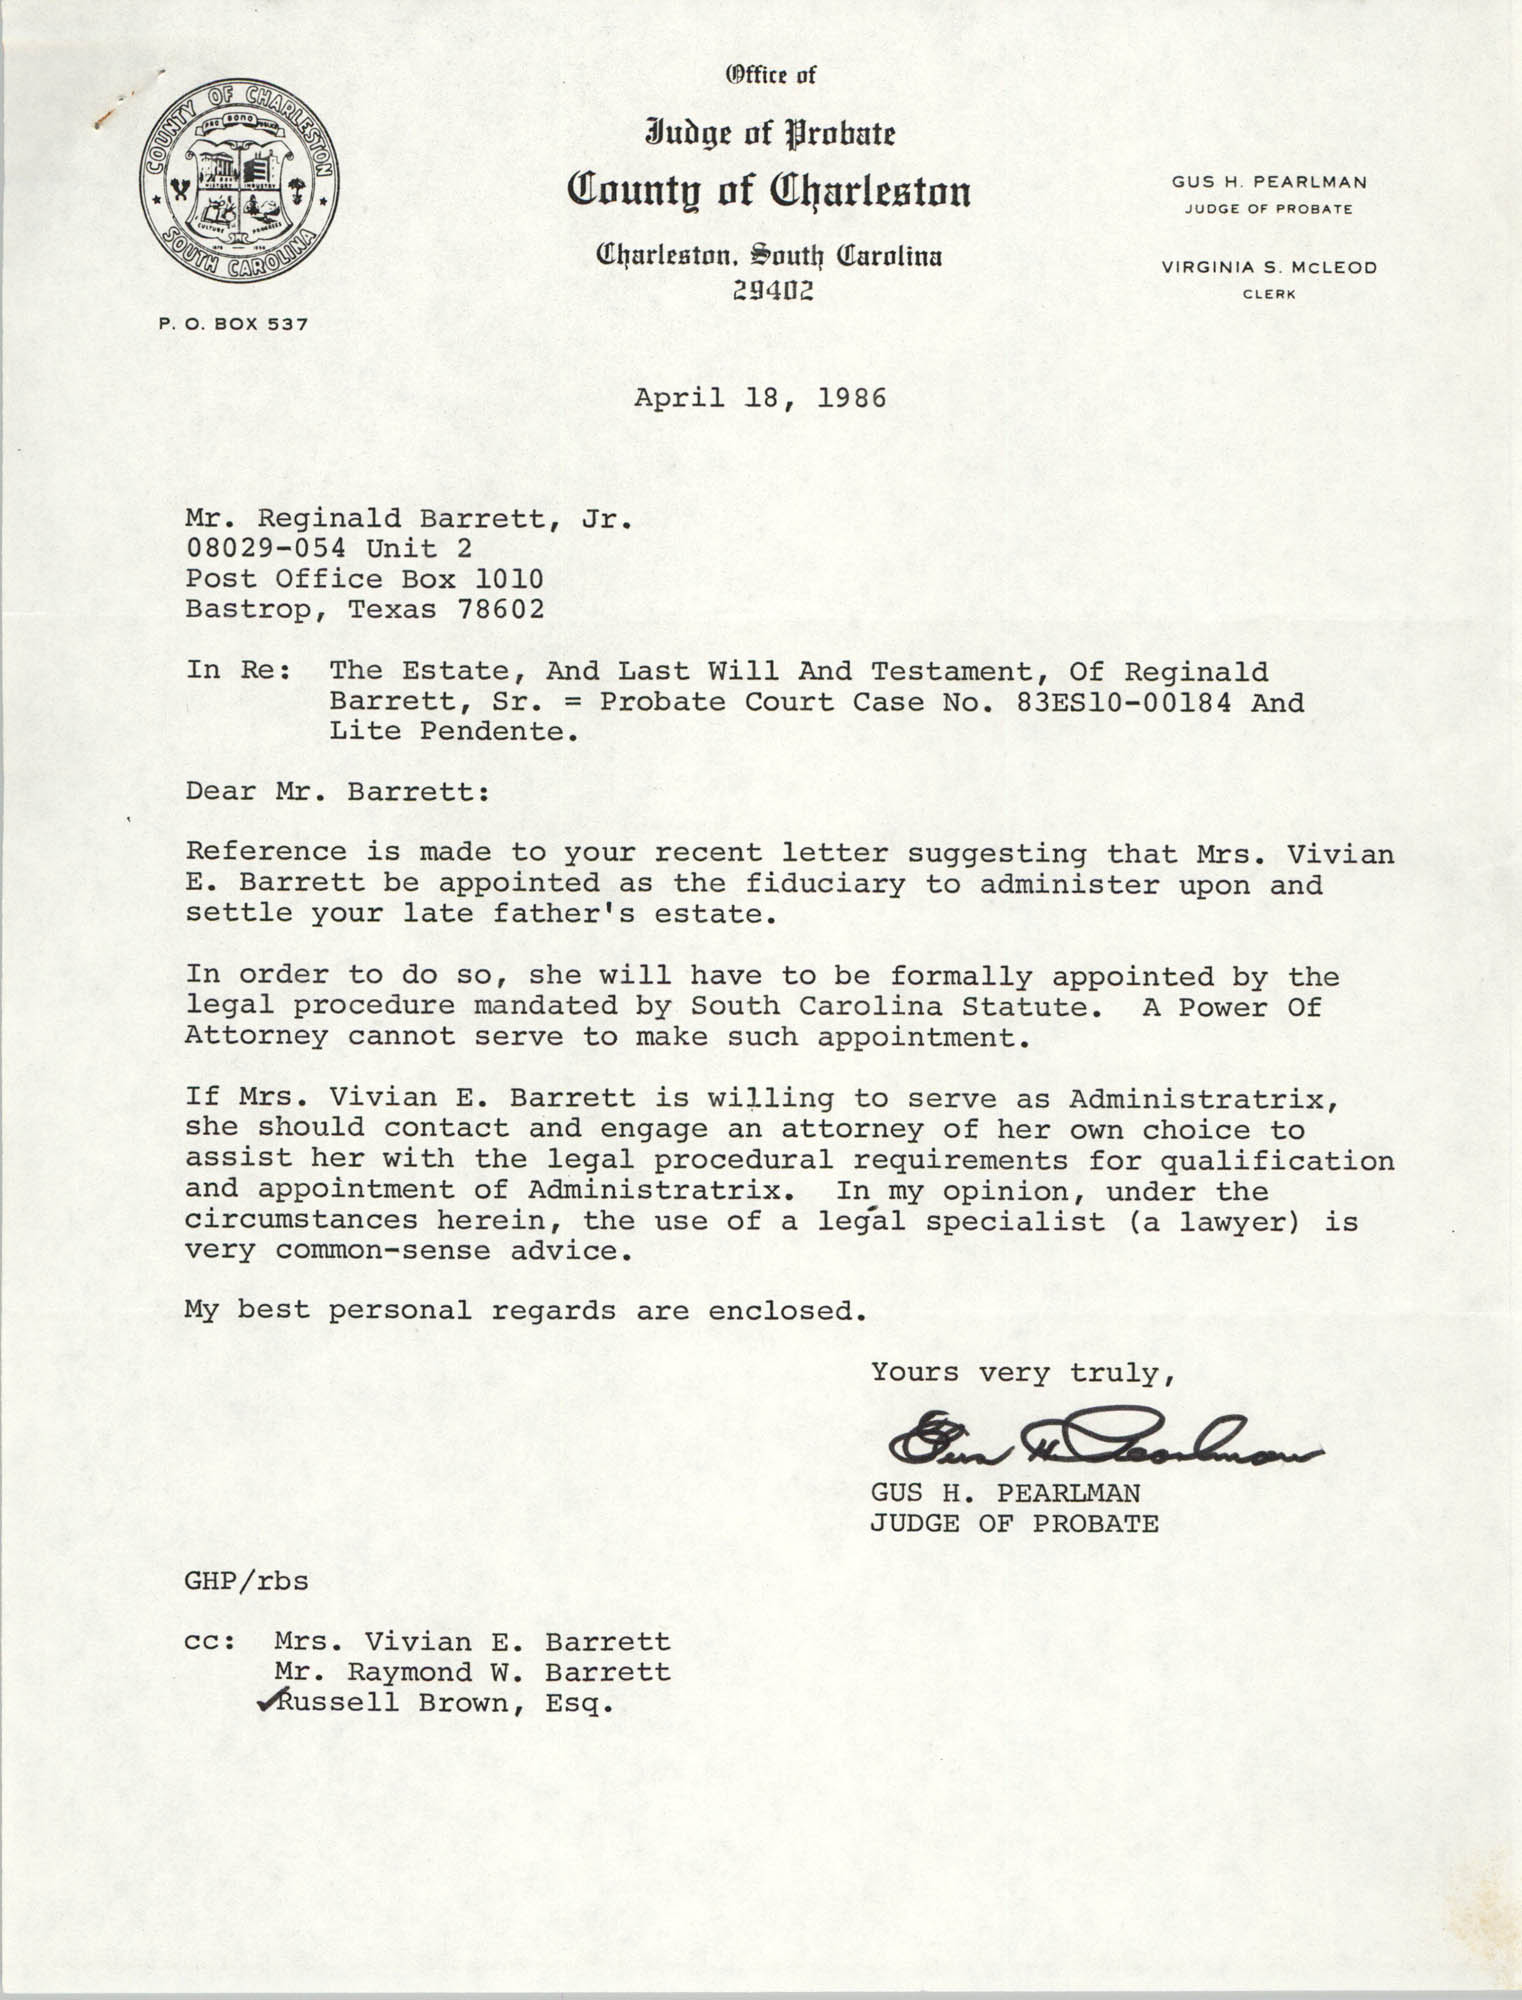 Letter from Gus Pearlman to Reginald Barrett Jr., April 18, 1986